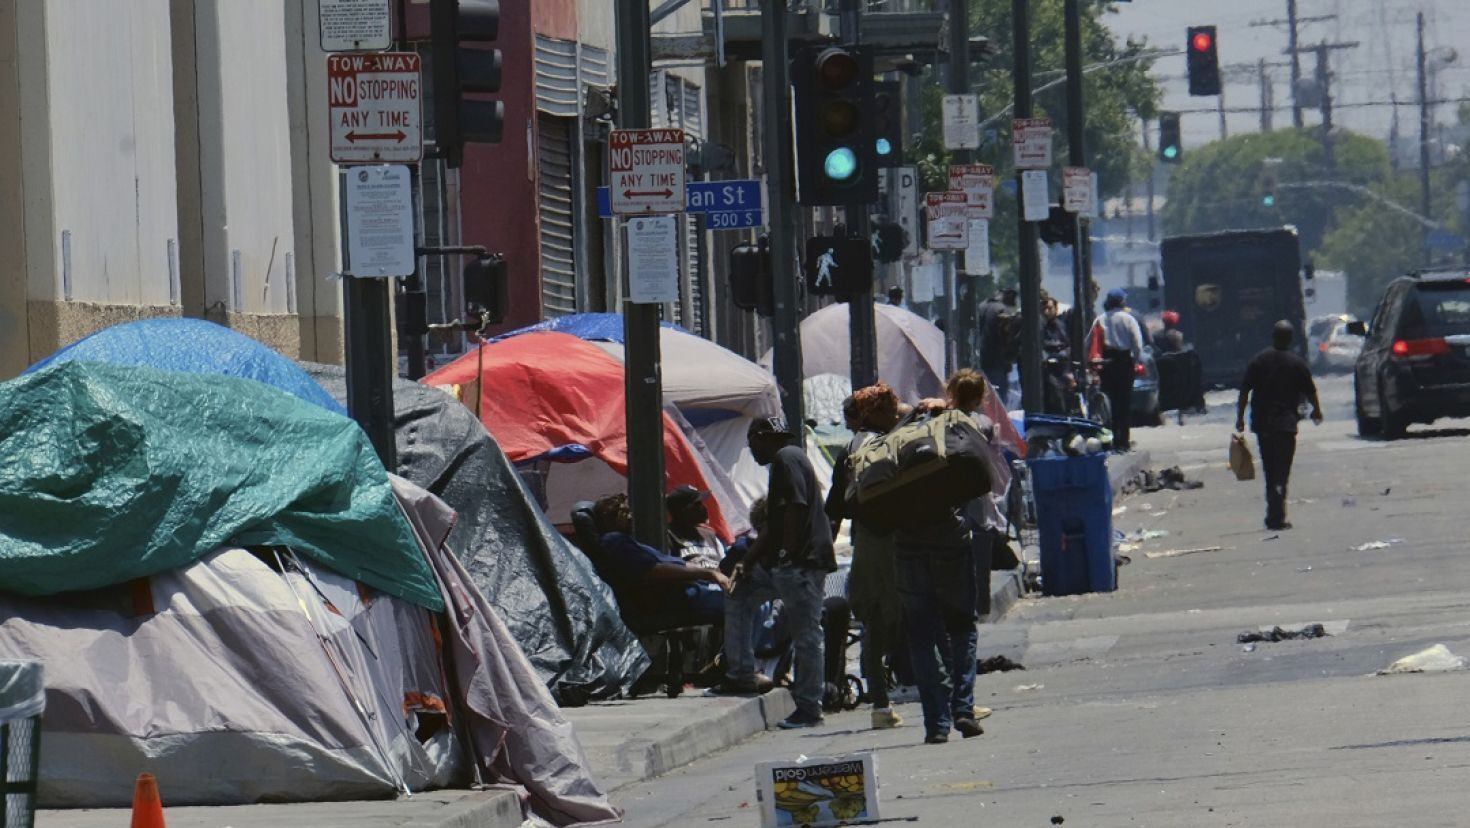 Homelessness Jumps 12 Across Los Angeles County Homeless People Homeless Los Angeles County